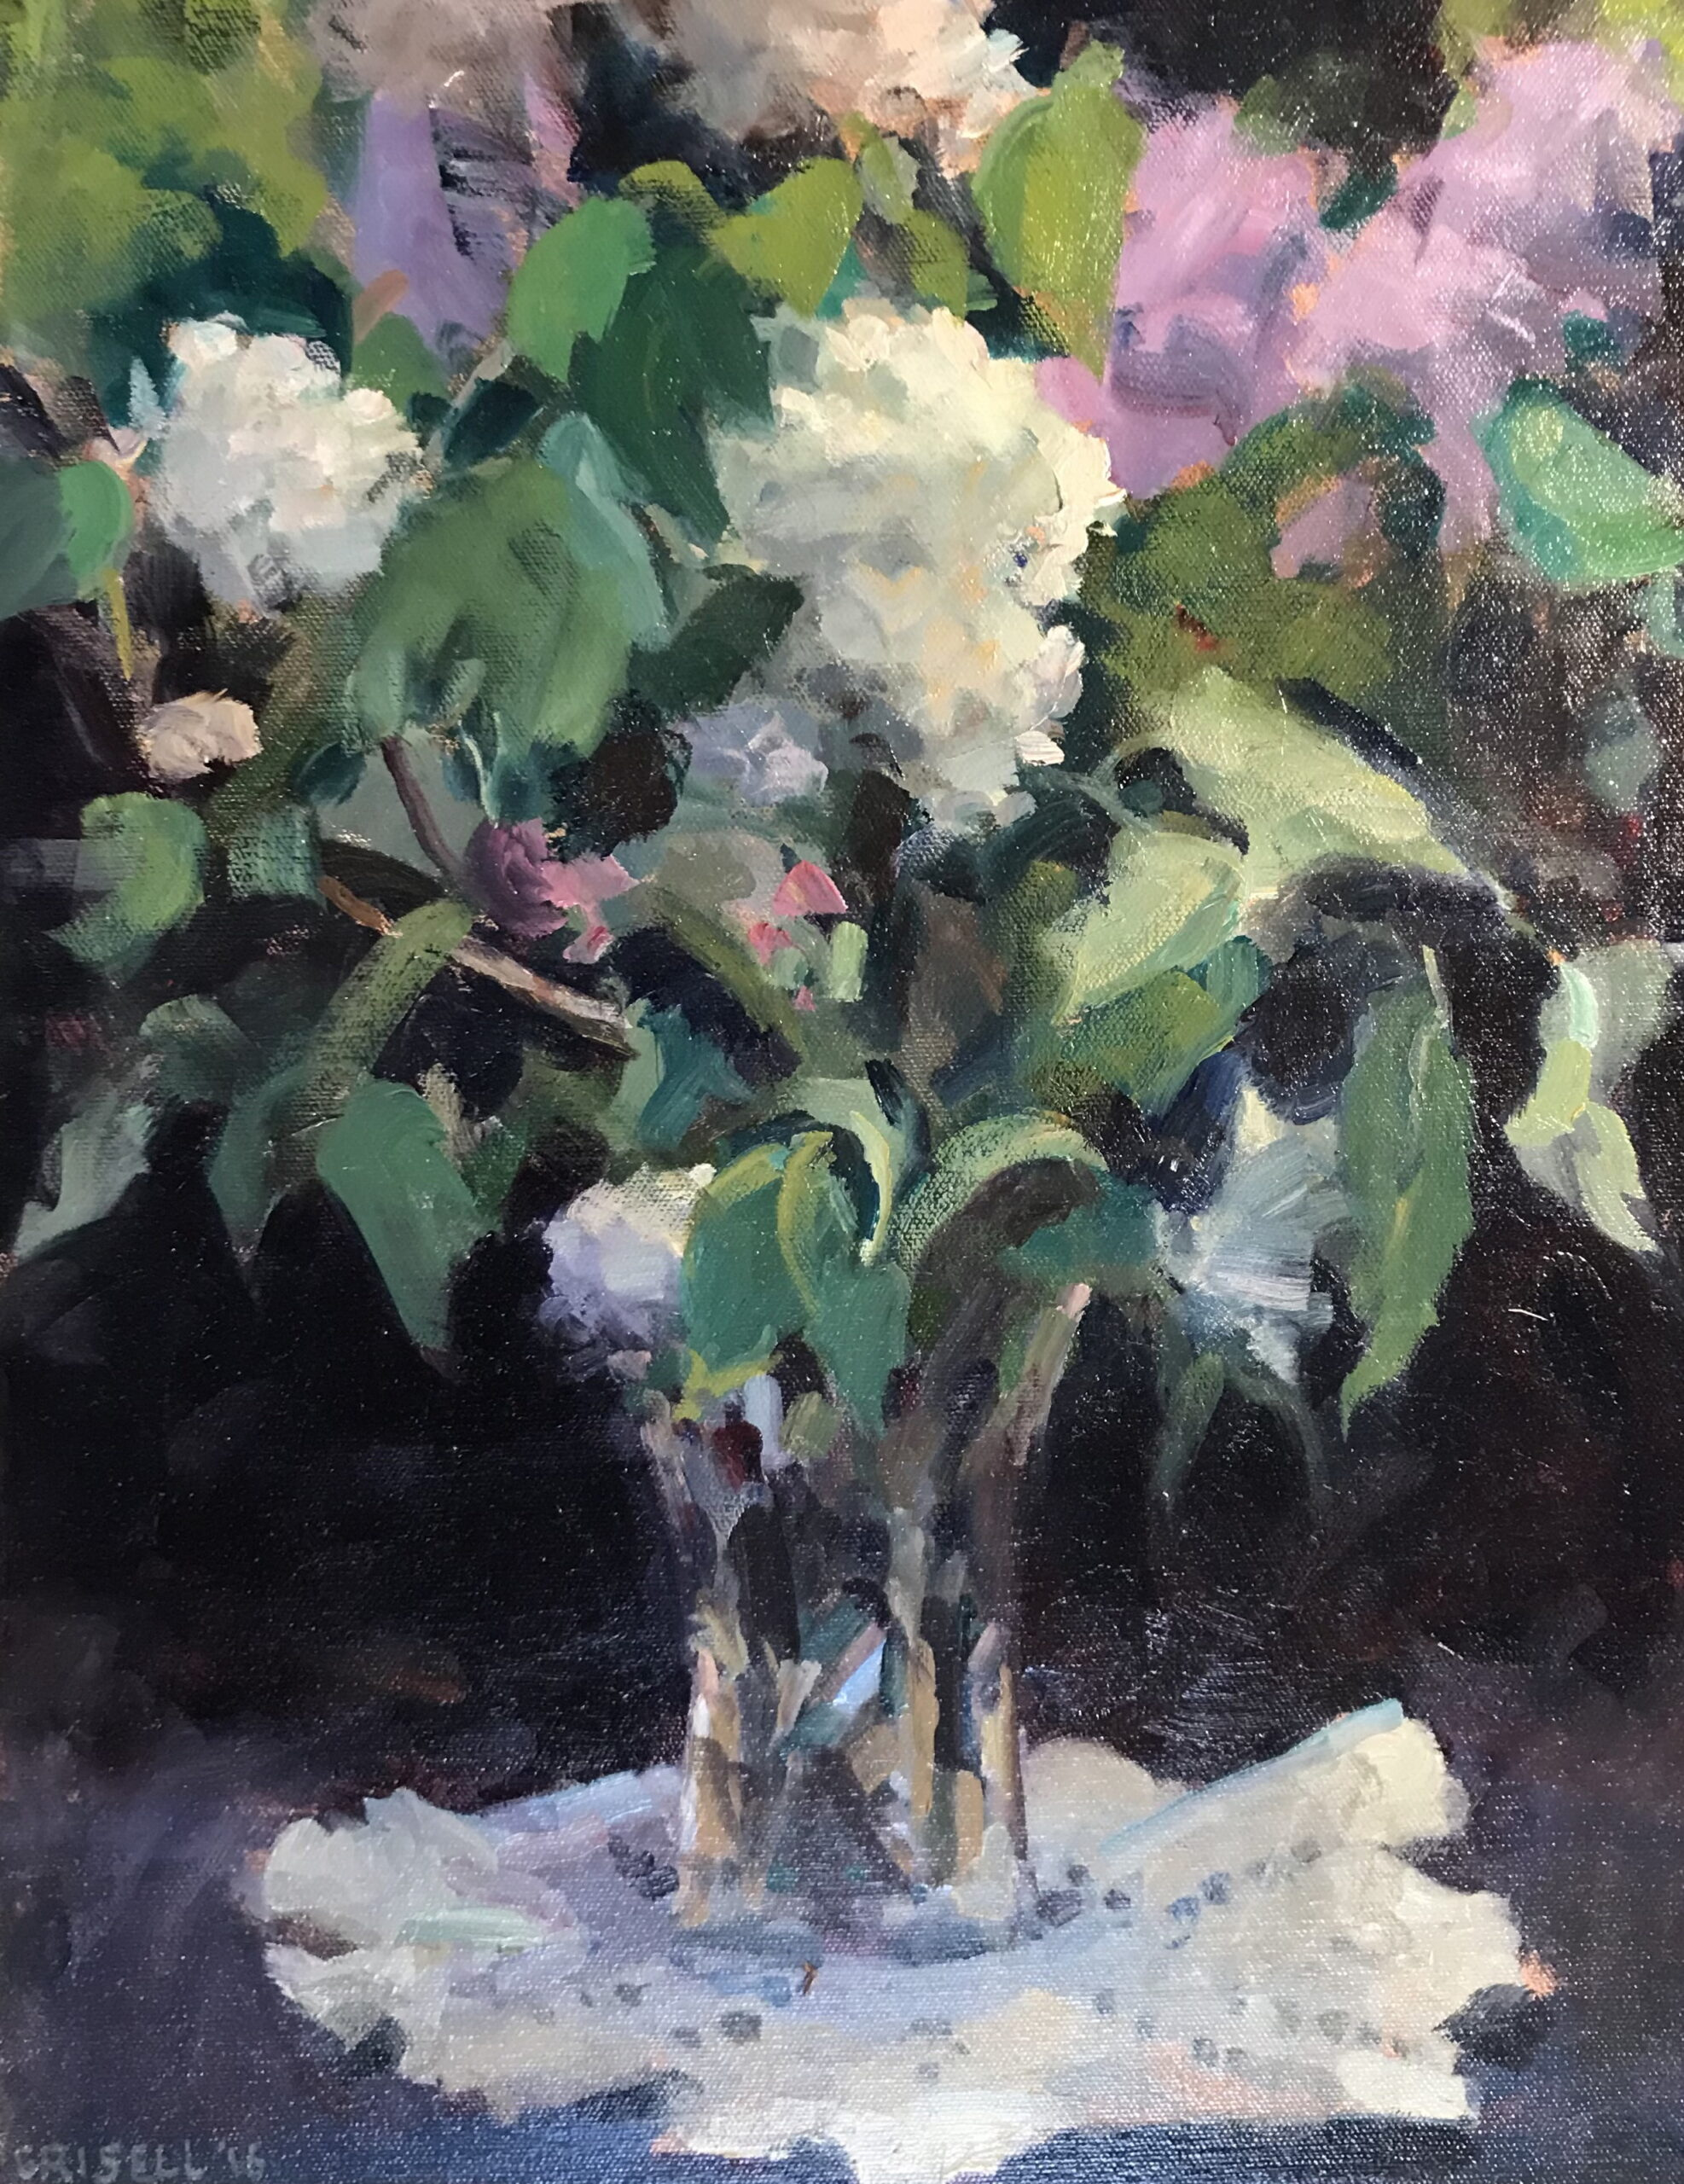 Lilacs and Lace, Oil on Canvas, 20 x 16 Inches, by Susan Grisell, $550